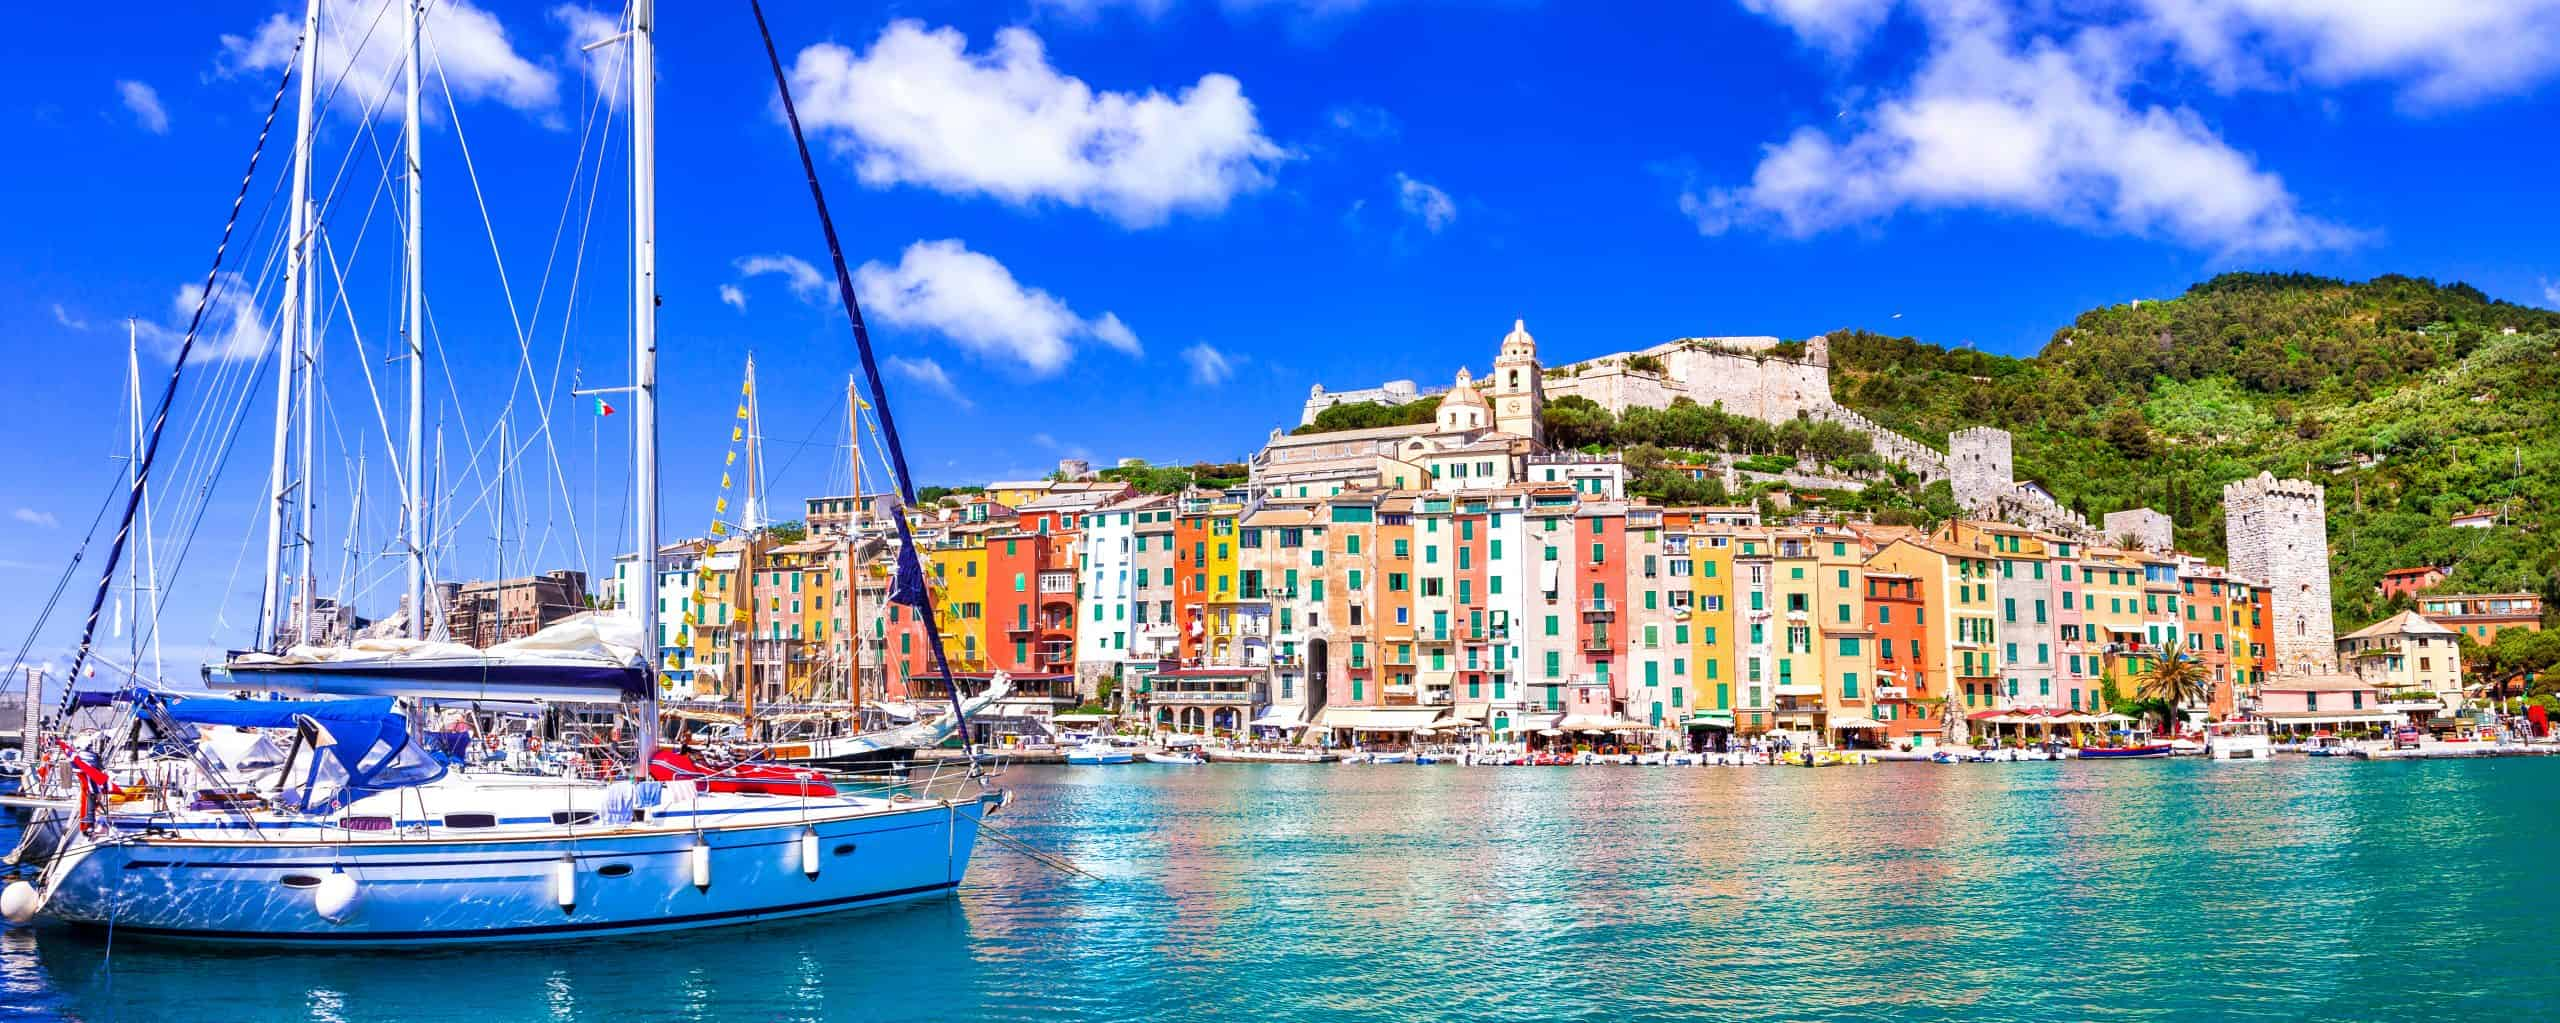 Town of Portovenere, and Cinque Terre natural park, Italy